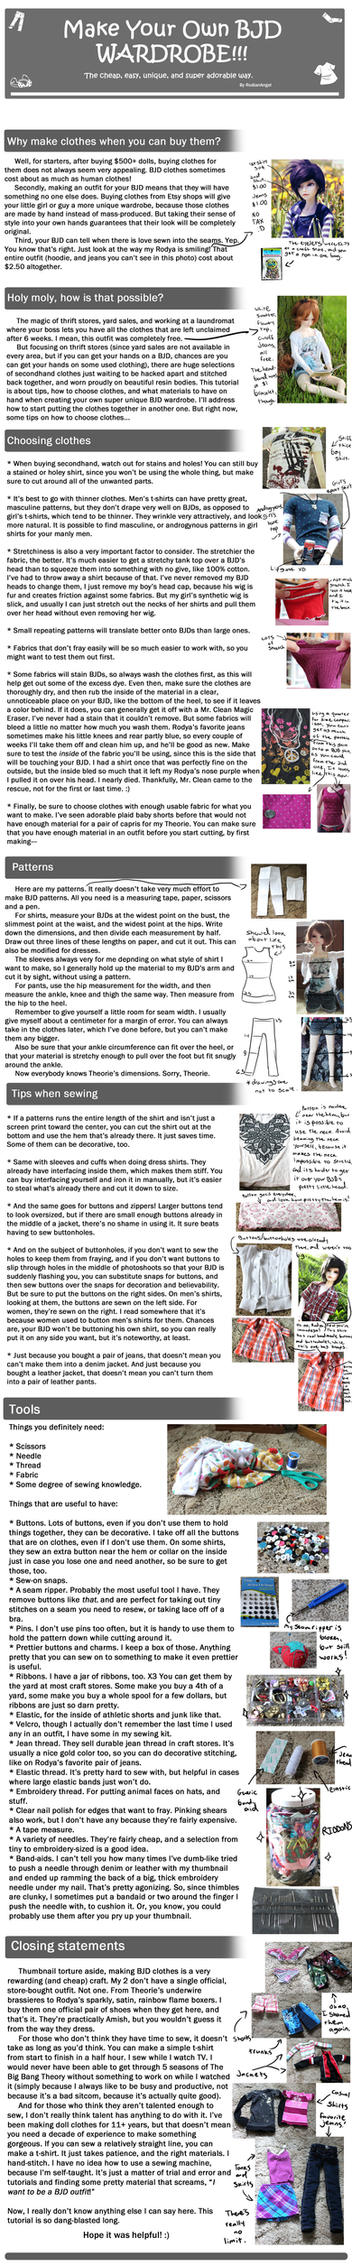 How to Make Your Own BJD Wardrobe! by RodianAngel